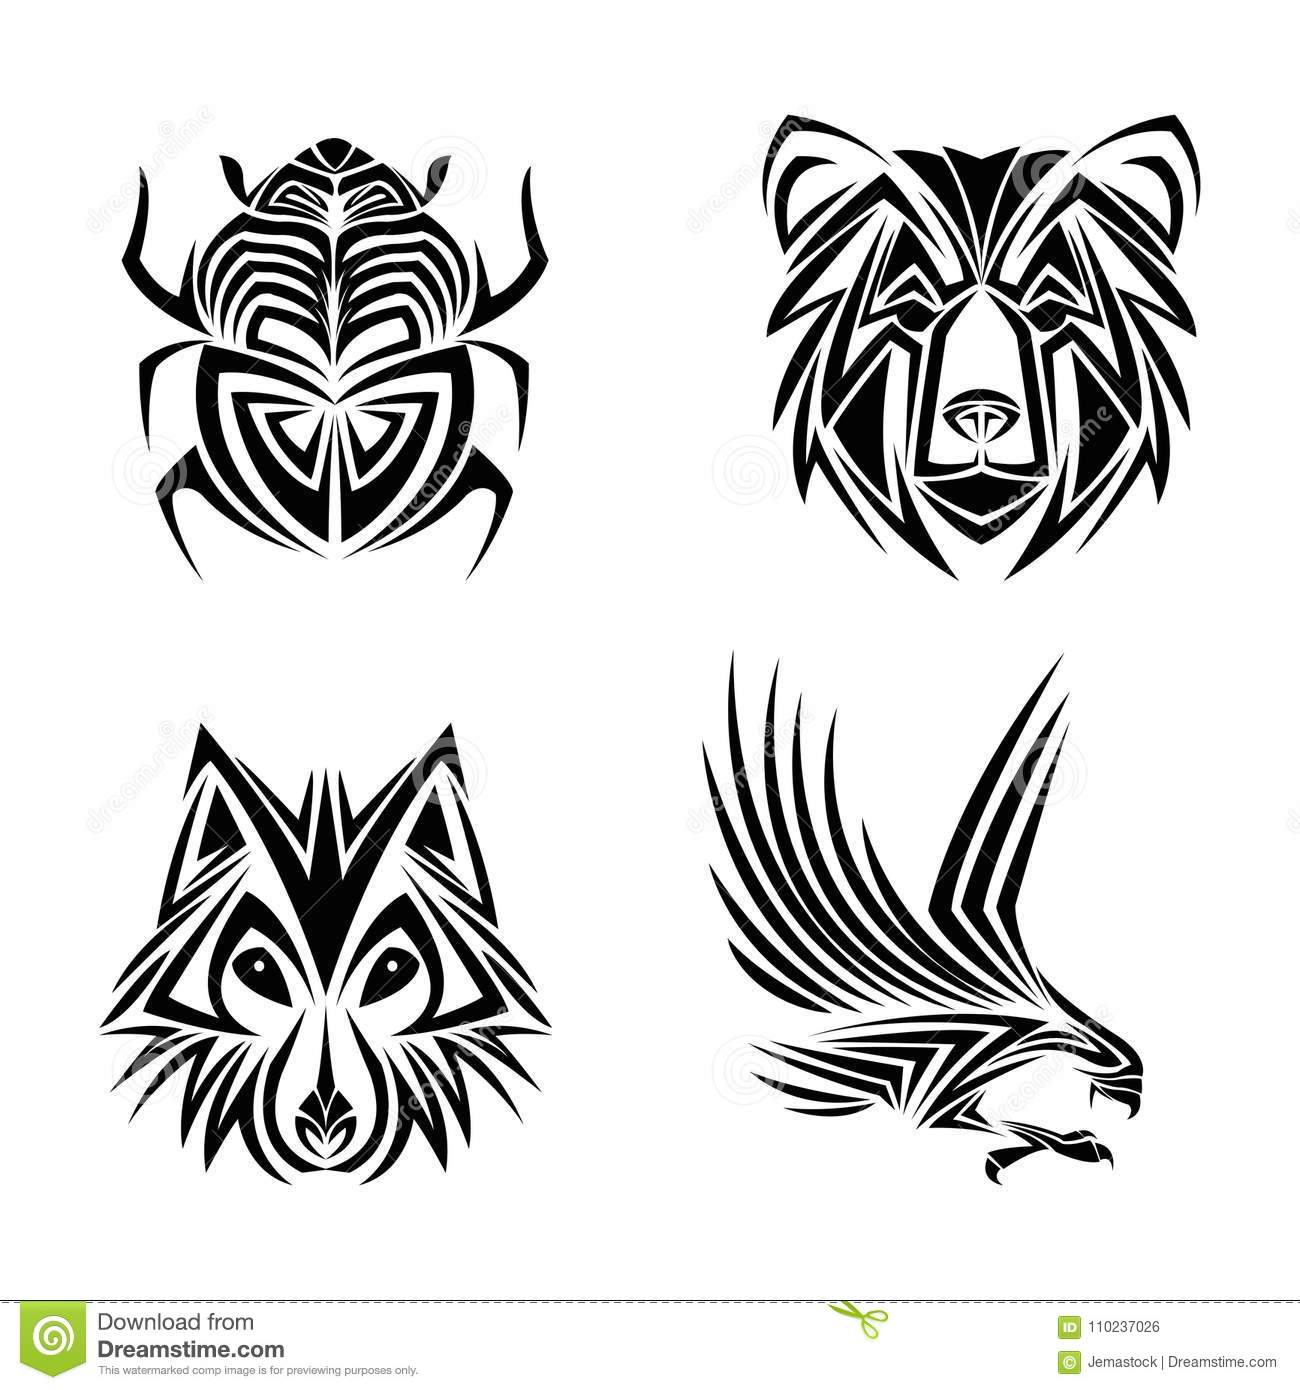 21c8af936 Eagle wolf bear bug tattoo animal draw abstract icon. flat and isolated  design. Vector illustration